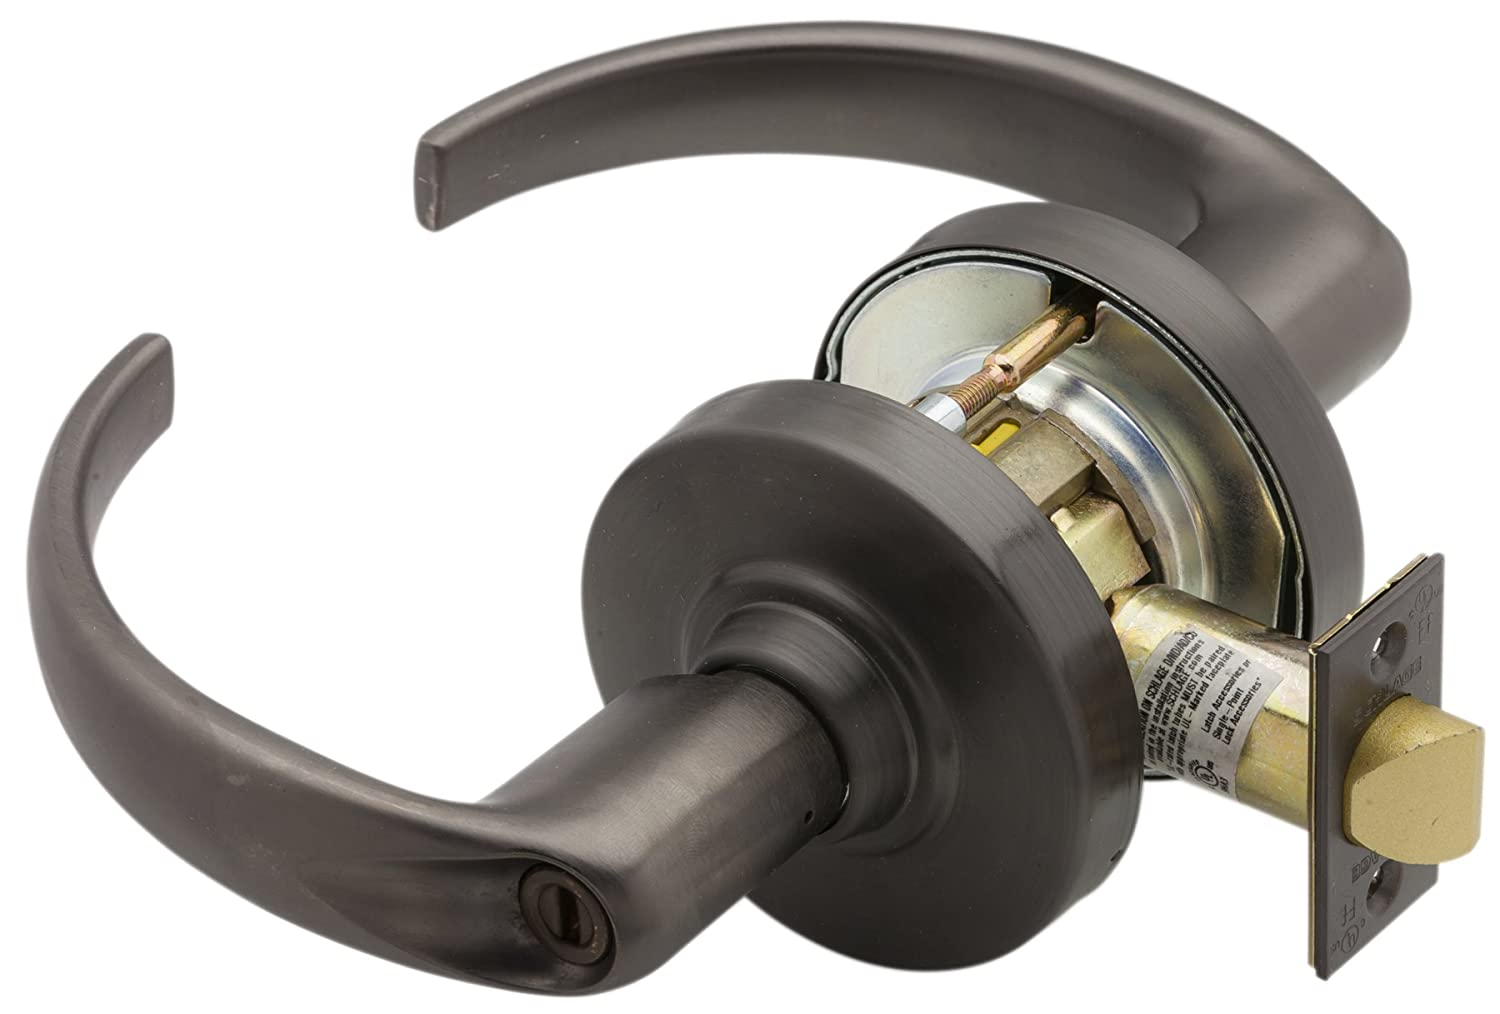 Oil Rubbed Bronze Finish Sparta Lever Design Privacy Function Schlage commercial ND40SPA613 ND Series Grade 1 Cylindrical Lock